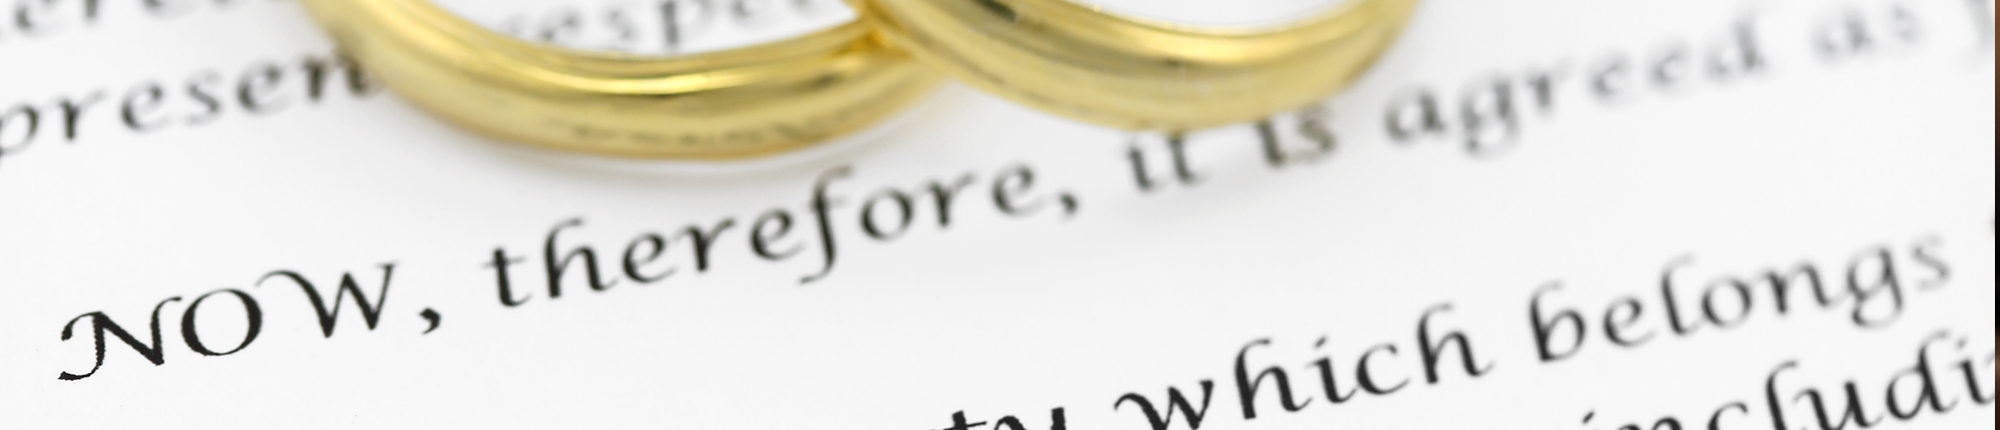 wedding rings over vows on paper